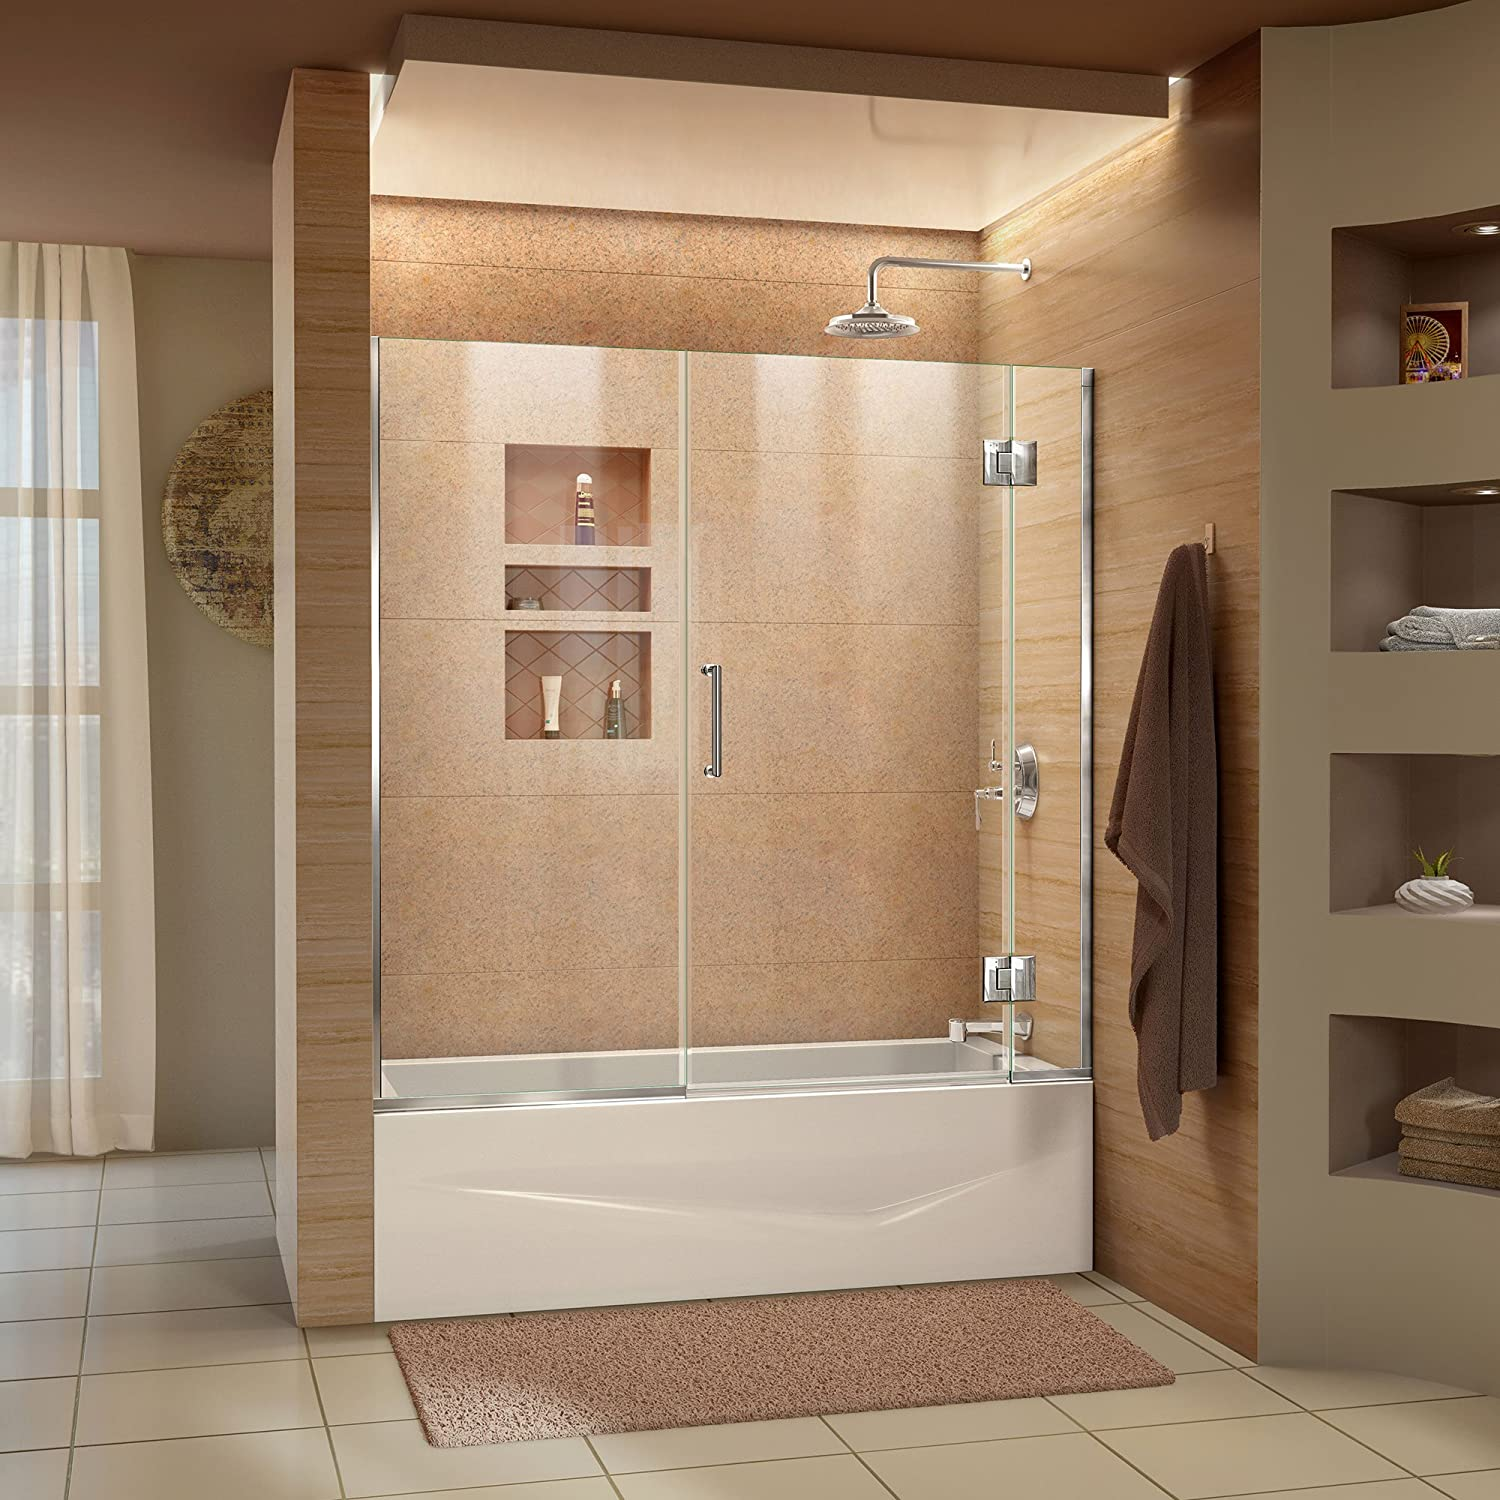 DreamLine Unidoor-X 58-58 1 2 in. W x 58 in. H Frameless Hinged Tub Door in Chrome, D58580-01